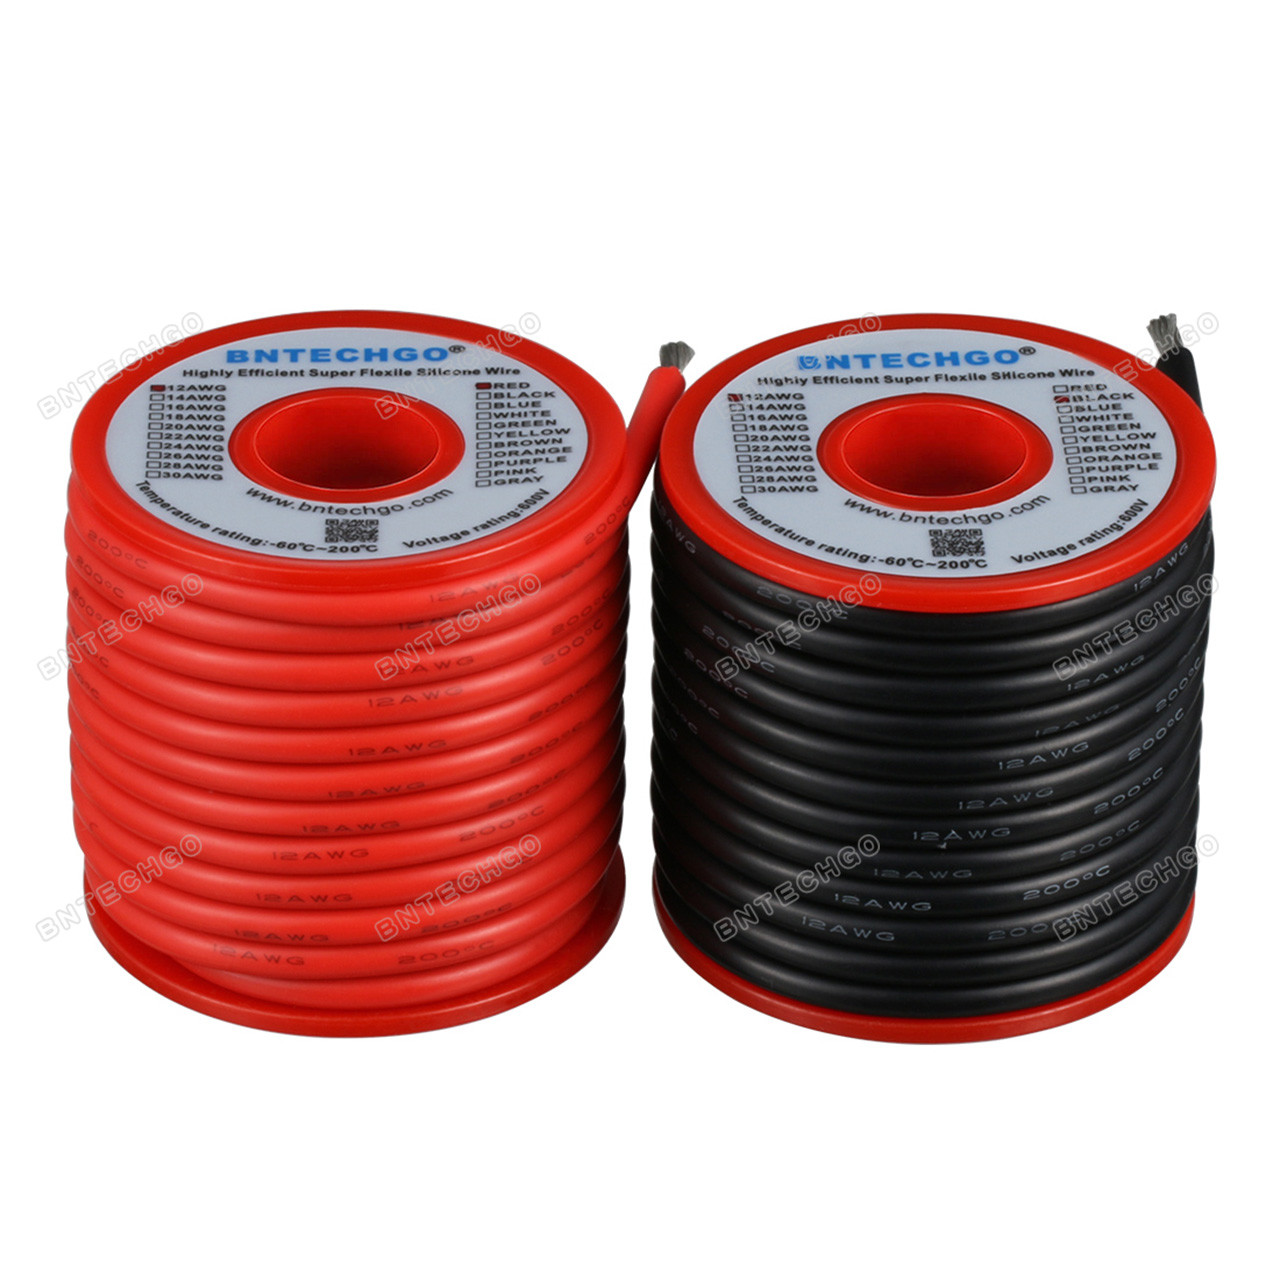 Black 6 AWG Silicone Wire Fine Strand Tinned Copper 25 ft each Red /& Yellow